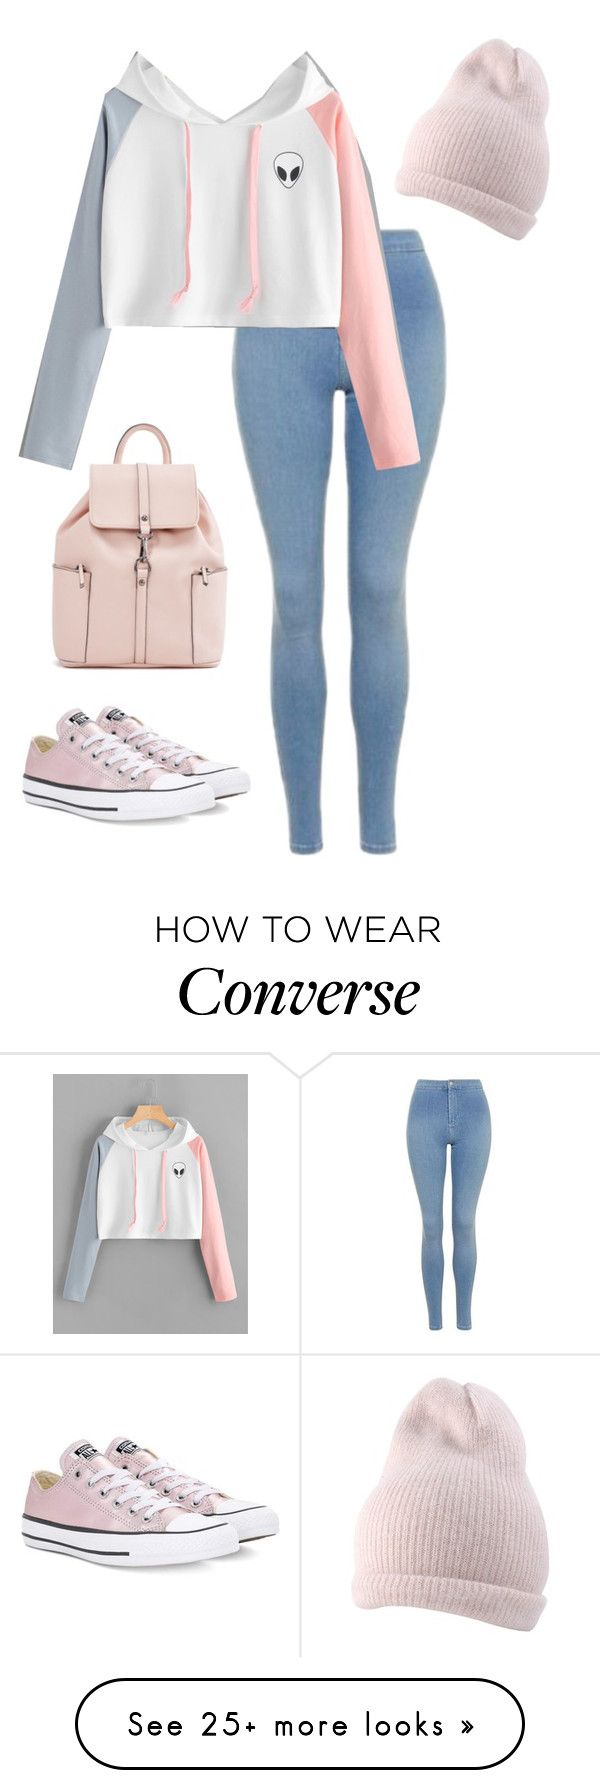 """Untitled #784"" by imane-99 on Polyvore featuring Topshop and Converse"